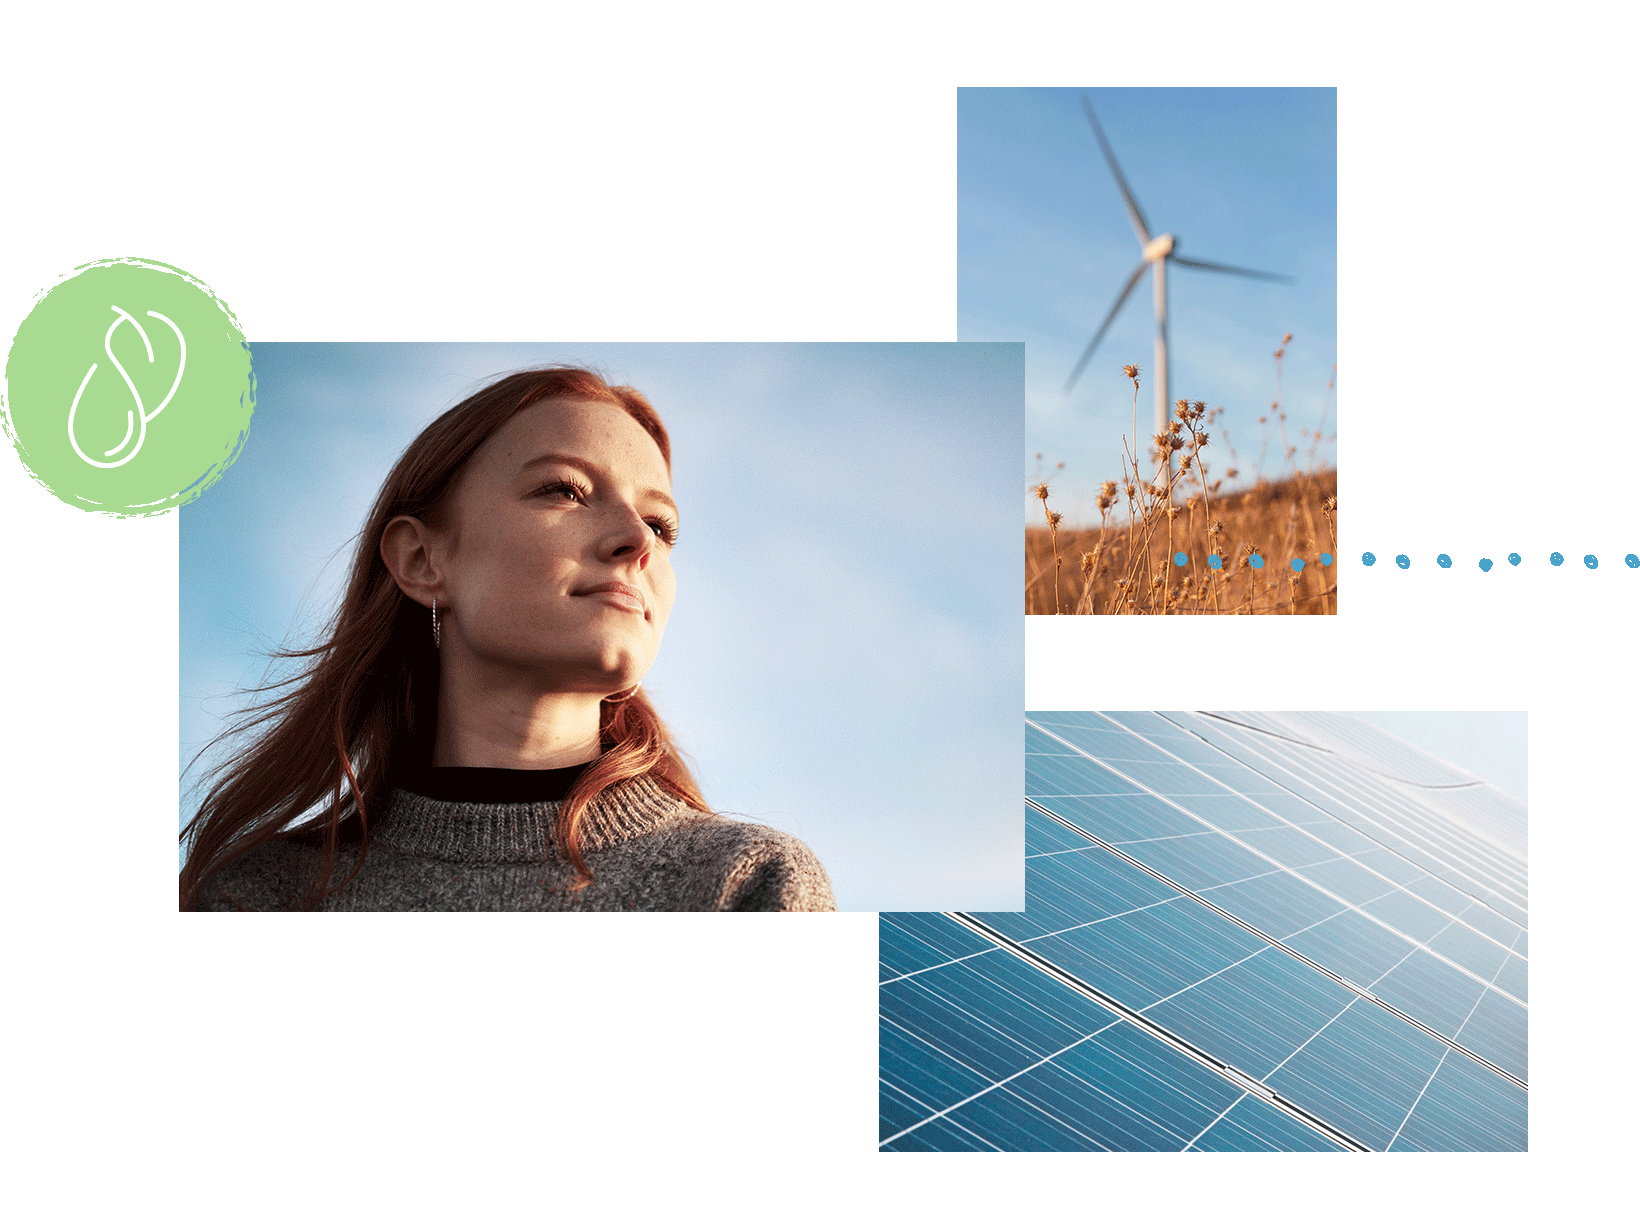 onlooking-woman-wind-turbine-solar-panel